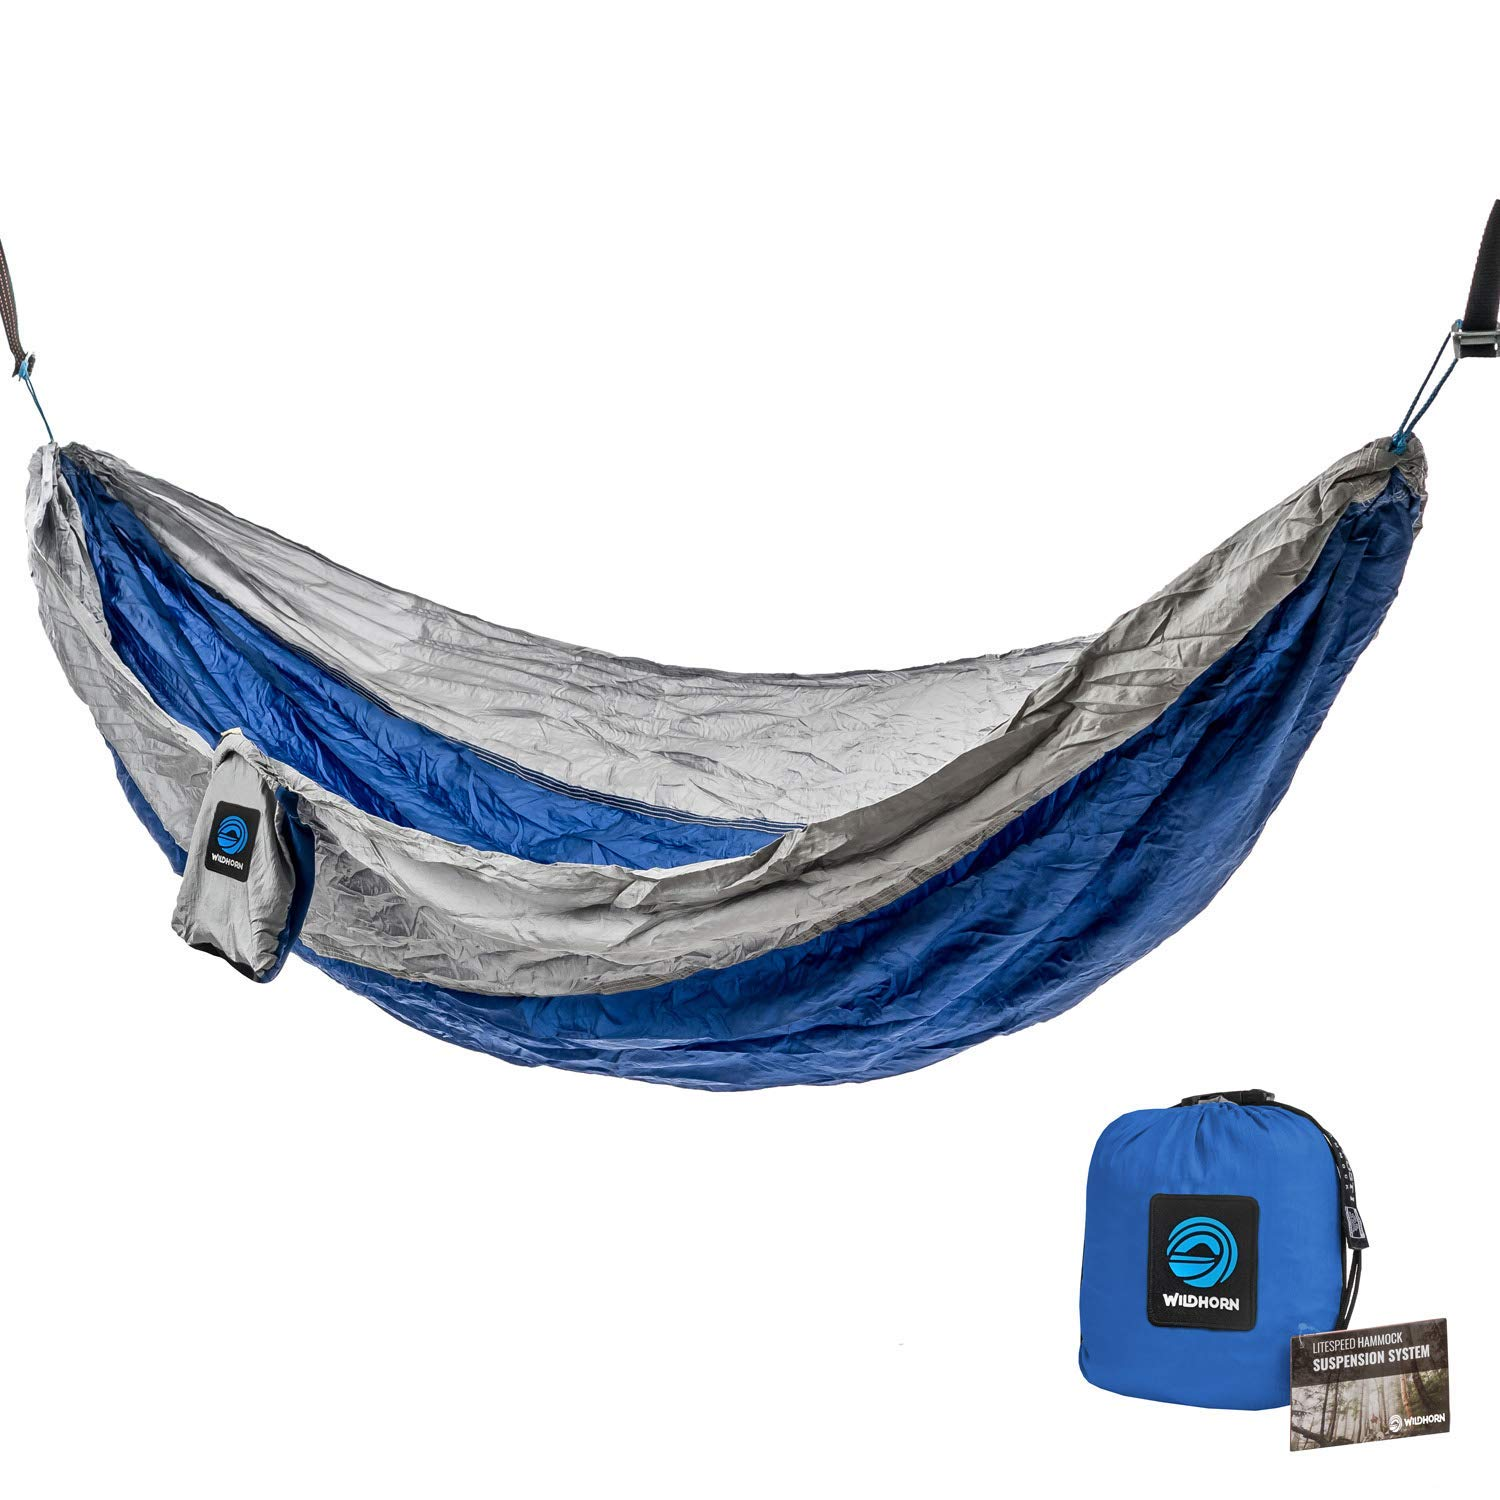 WildHorn Outfitters Outpost Double/Single Camping Hammock with 11' Tree Straps - 100% Parachute Nylon - Cinch Buckle Design, No Knots Required - Easiest Hammock to Hang [並行輸入品] B07R4V6W8B